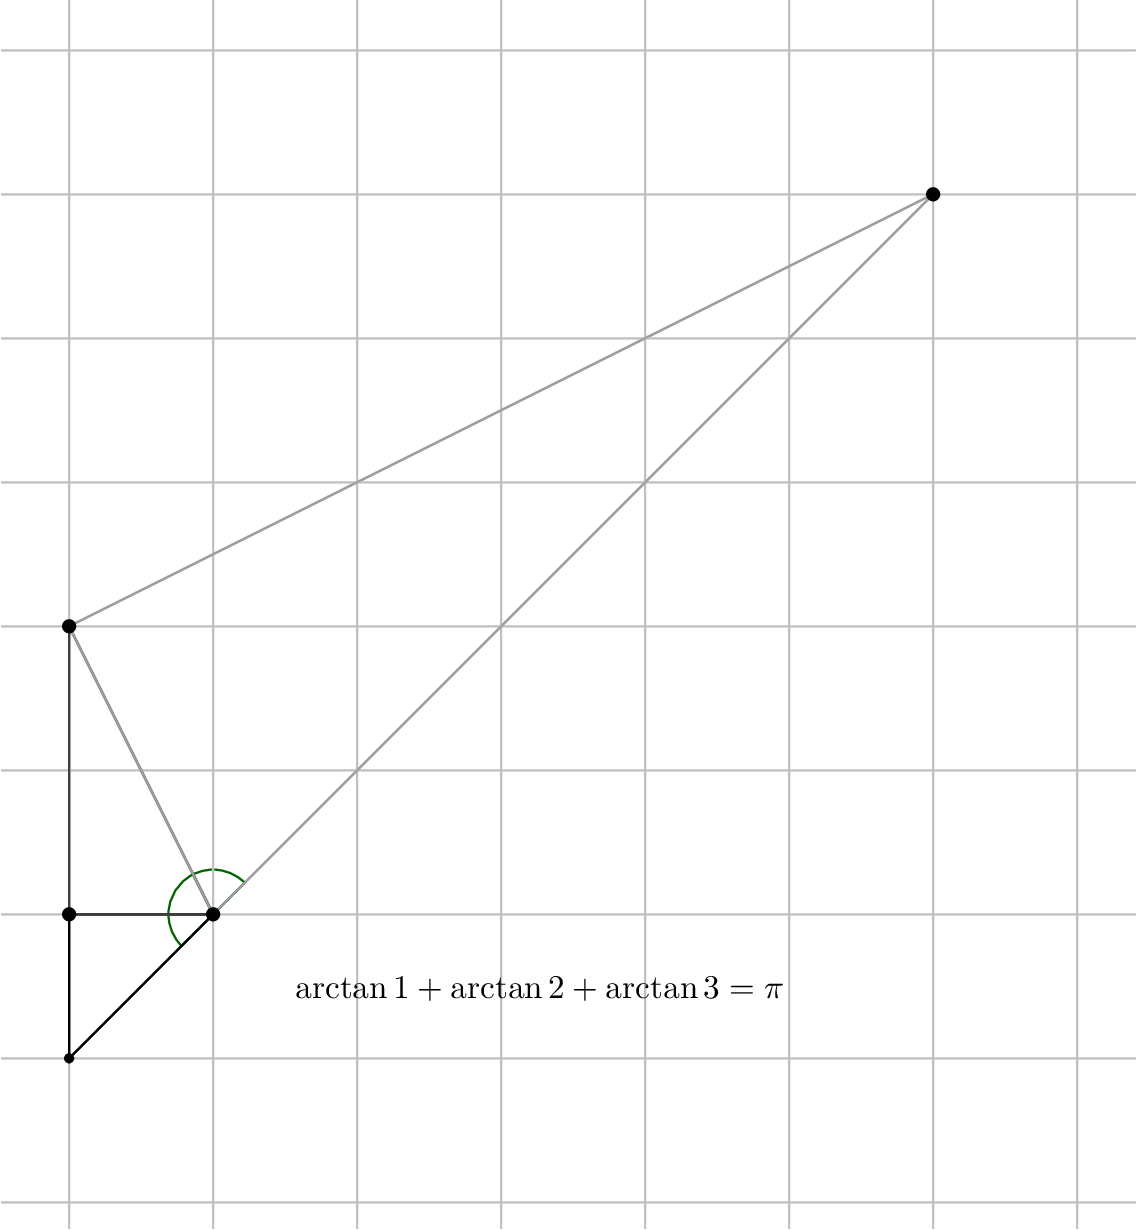 "[asy]  /* Geogebra to Asymptote conversion, documentation at artofproblemsolving.com/Wiki, go to User:Azjps/geogebra */ import graph; usepackage(""amsmath""); size(13cm);  real labelscalefactor = 0.5; /* changes label-to-point distance */ pen dps = linewidth(0.7) + fontsize(10); defaultpen(dps); /* default pen style */  pen dotstyle = black; /* point style */  real xmin = -0.4717093412177357, xmax = 7.405441345585962, ymin = -1.1854534297865673, ymax = 7.342957746870971;  /* image dimensions */ pen uququq = rgb(0.25098039215686274,0.25098039215686274,0.25098039215686274); pen aqaqaq = rgb(0.6274509803921569,0.6274509803921569,0.6274509803921569); pen qqwuqq = rgb(0.,0.39215686274509803,0.); pen cqcqcq = rgb(0.7529411764705882,0.7529411764705882,0.7529411764705882);   draw((0.,0.)--(0.,1.)--(1.,1.)--cycle);  draw((1.,1.)--(0.,3.)--(0.,1.)--cycle, uququq);  draw((0.,3.)--(6.,6.)--(1.,1.)--cycle, aqaqaq);  draw(arc((1.,1.),0.3101240427875472,180.,225.)--(1.,1.)--cycle, qqwuqq);  draw(arc((1.,1.),0.3101240427875472,116.56505117707799,180.)--(1.,1.)--cycle, qqwuqq);  draw(arc((1.,1.),0.3101240427875472,45.,116.56505117707799)--(1.,1.)--cycle, qqwuqq);   /* draw grid of horizontal/vertical lines */ pen gridstyle = linewidth(0.7) + cqcqcq; real gridx = 1., gridy = 1.; /* grid intervals */ for(real i = ceil(xmin/gridx)*gridx; i <= floor(xmax/gridx)*gridx; i += gridx)  draw((i,ymin)--(i,ymax), gridstyle); for(real i = ceil(ymin/gridy)*gridy; i <= floor(ymax/gridy)*gridy; i += gridy)  draw((xmin,i)--(xmax,i), gridstyle);  /* end grid */    /* draw figures */ draw((0.,0.)--(0.,1.));  draw((0.,1.)--(1.,1.));  draw((1.,1.)--(0.,0.));  draw((1.,1.)--(0.,3.), uququq);  draw((0.,3.)--(0.,1.), uququq);  draw((0.,1.)--(1.,1.), uququq);  draw((0.,3.)--(6.,6.), aqaqaq);  draw((6.,6.)--(1.,1.), aqaqaq);  draw((1.,1.)--(0.,3.), aqaqaq);  label(""$\arctan 1 + \arctan 2 + \arctan 3 = \pi$"",(1.544096936901321,0.5925910821953678),SE*labelscalefactor,fontsize(10));   /* dots and labels */ dot((0.,0.),linewidth(3.pt) + dotstyle);  dot((0.,1.),dotstyle);  dot((1.,1.),dotstyle);  dot((0.,3.),dotstyle);  dot((6.,6.),dotstyle);  clip((xmin,ymin)--(xmin,ymax)--(xmax,ymax)--(xmax,ymin)--cycle);   /* end of picture */ [/asy]"